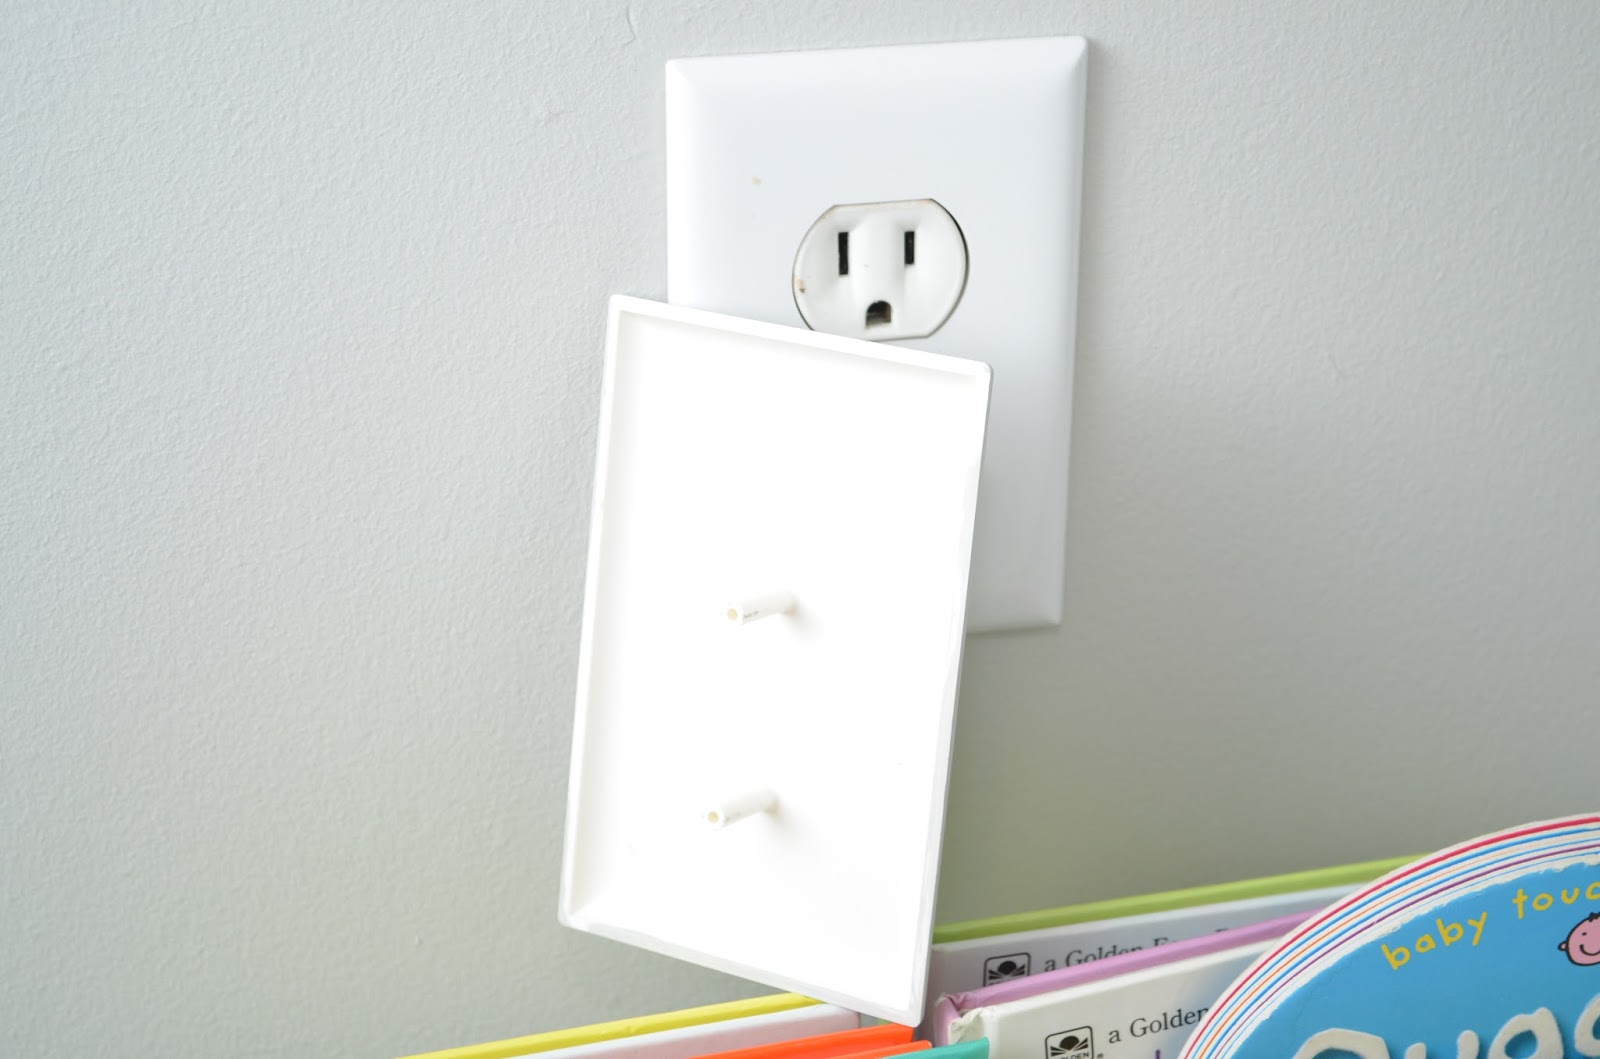 Apete's Reviews: Coverplug Paintable Electrical Outlet Cover